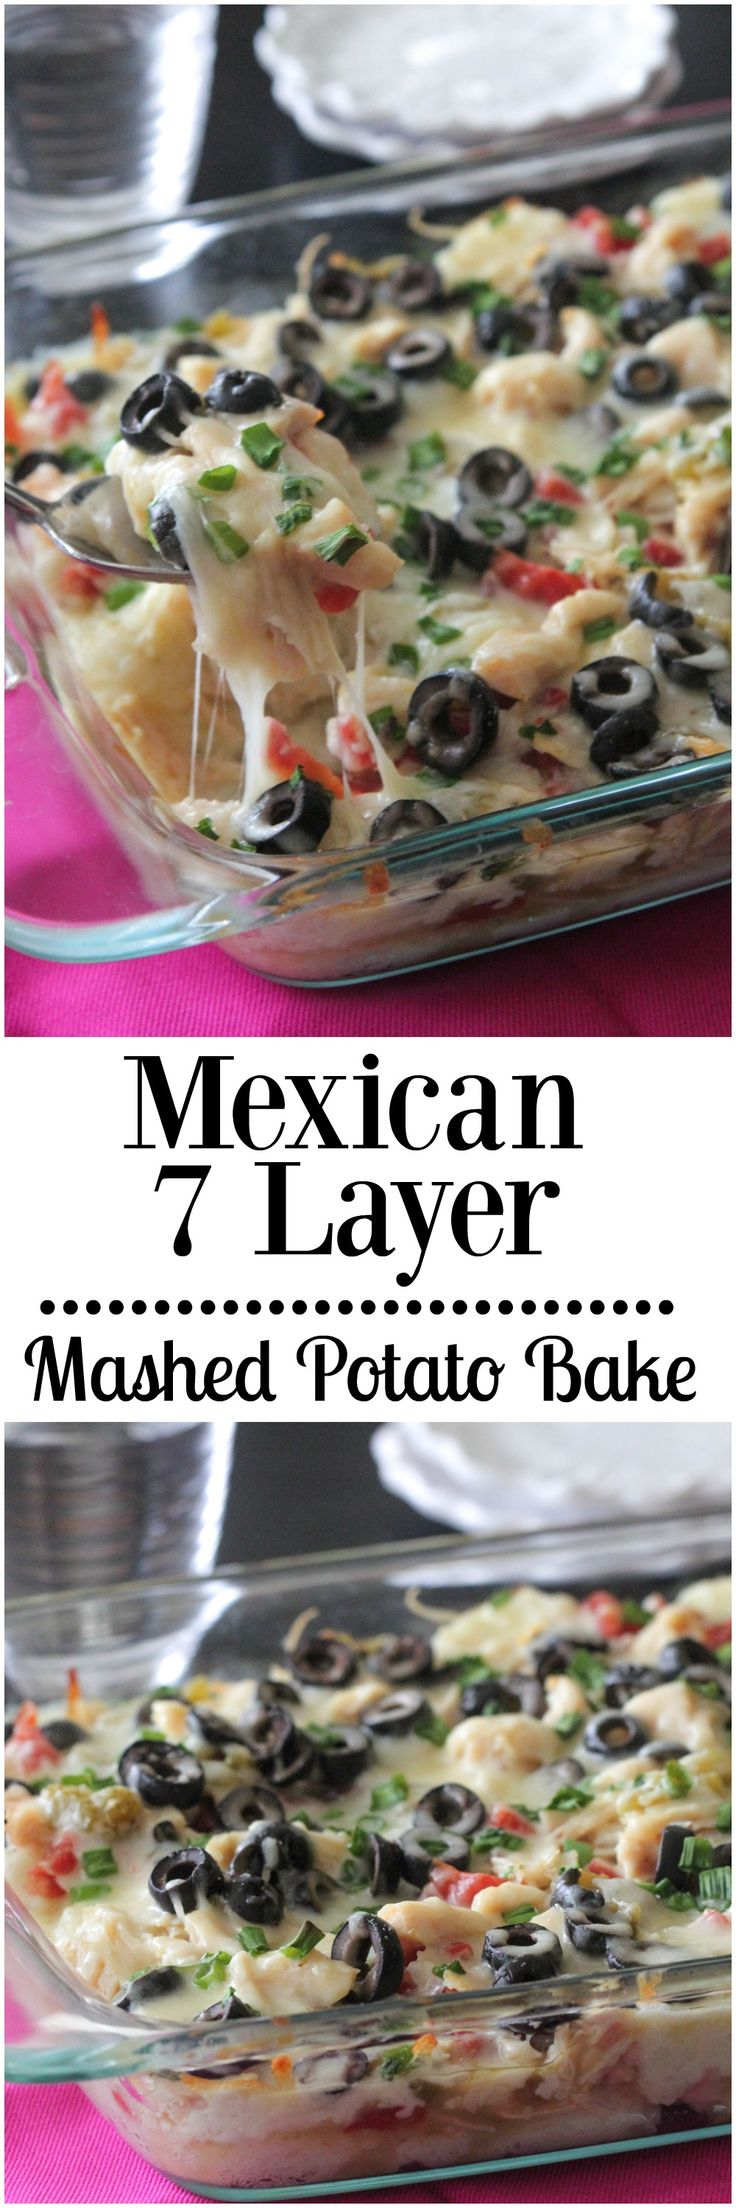 10246 best best comfort food recipes images on pinterest drink mexican 7 layer mashed potato bake forumfinder Image collections